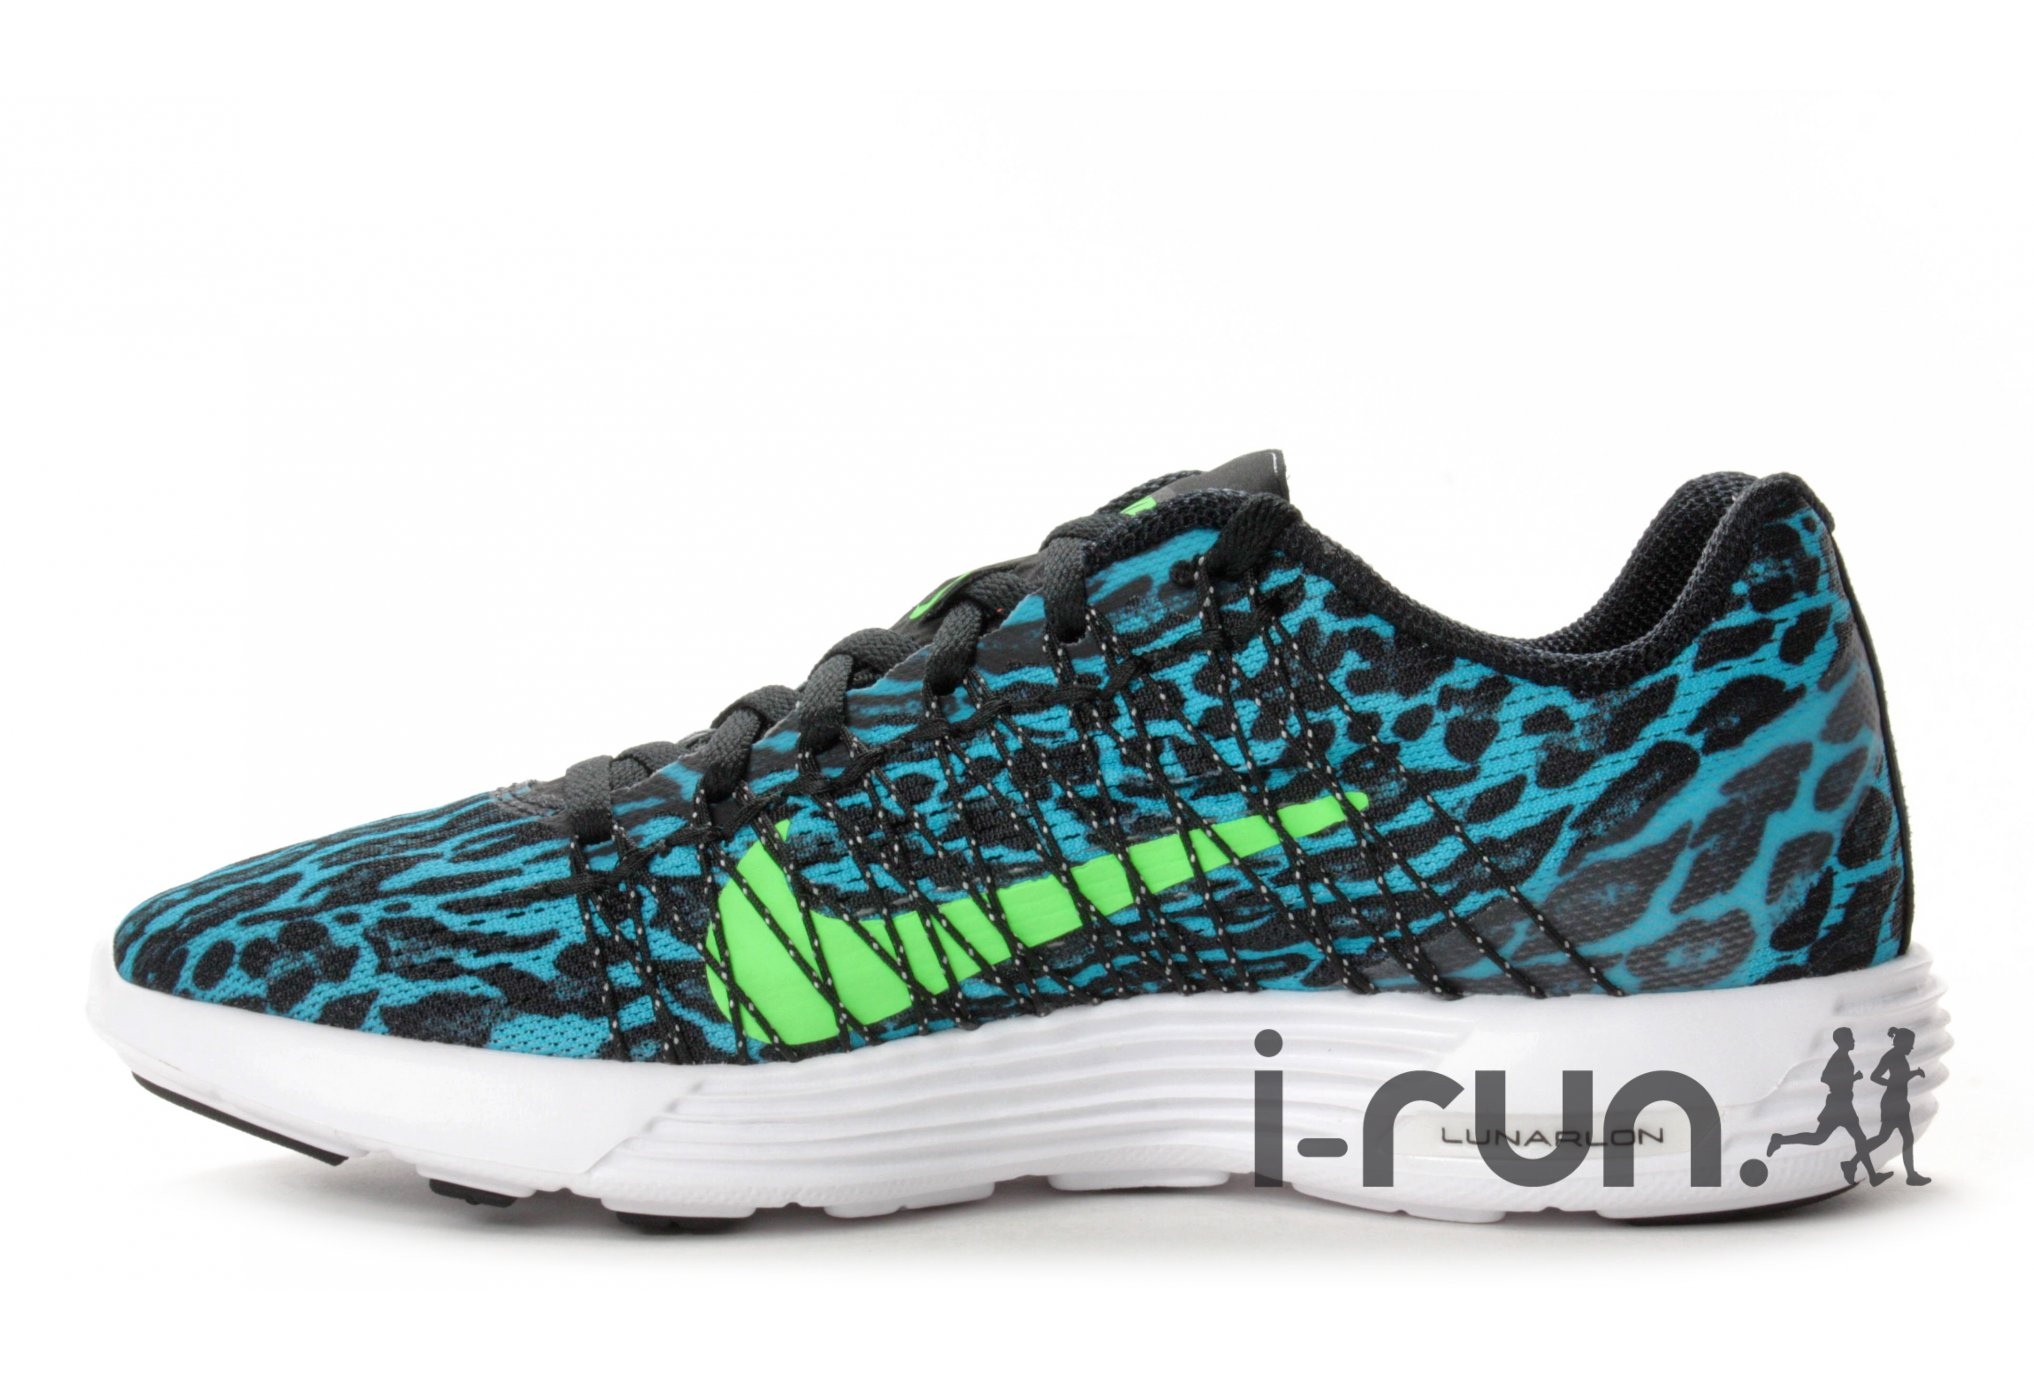 authentic quality reasonably priced good out x Nike Lunaracer 3 W Chaussures running femme, nike air seule force